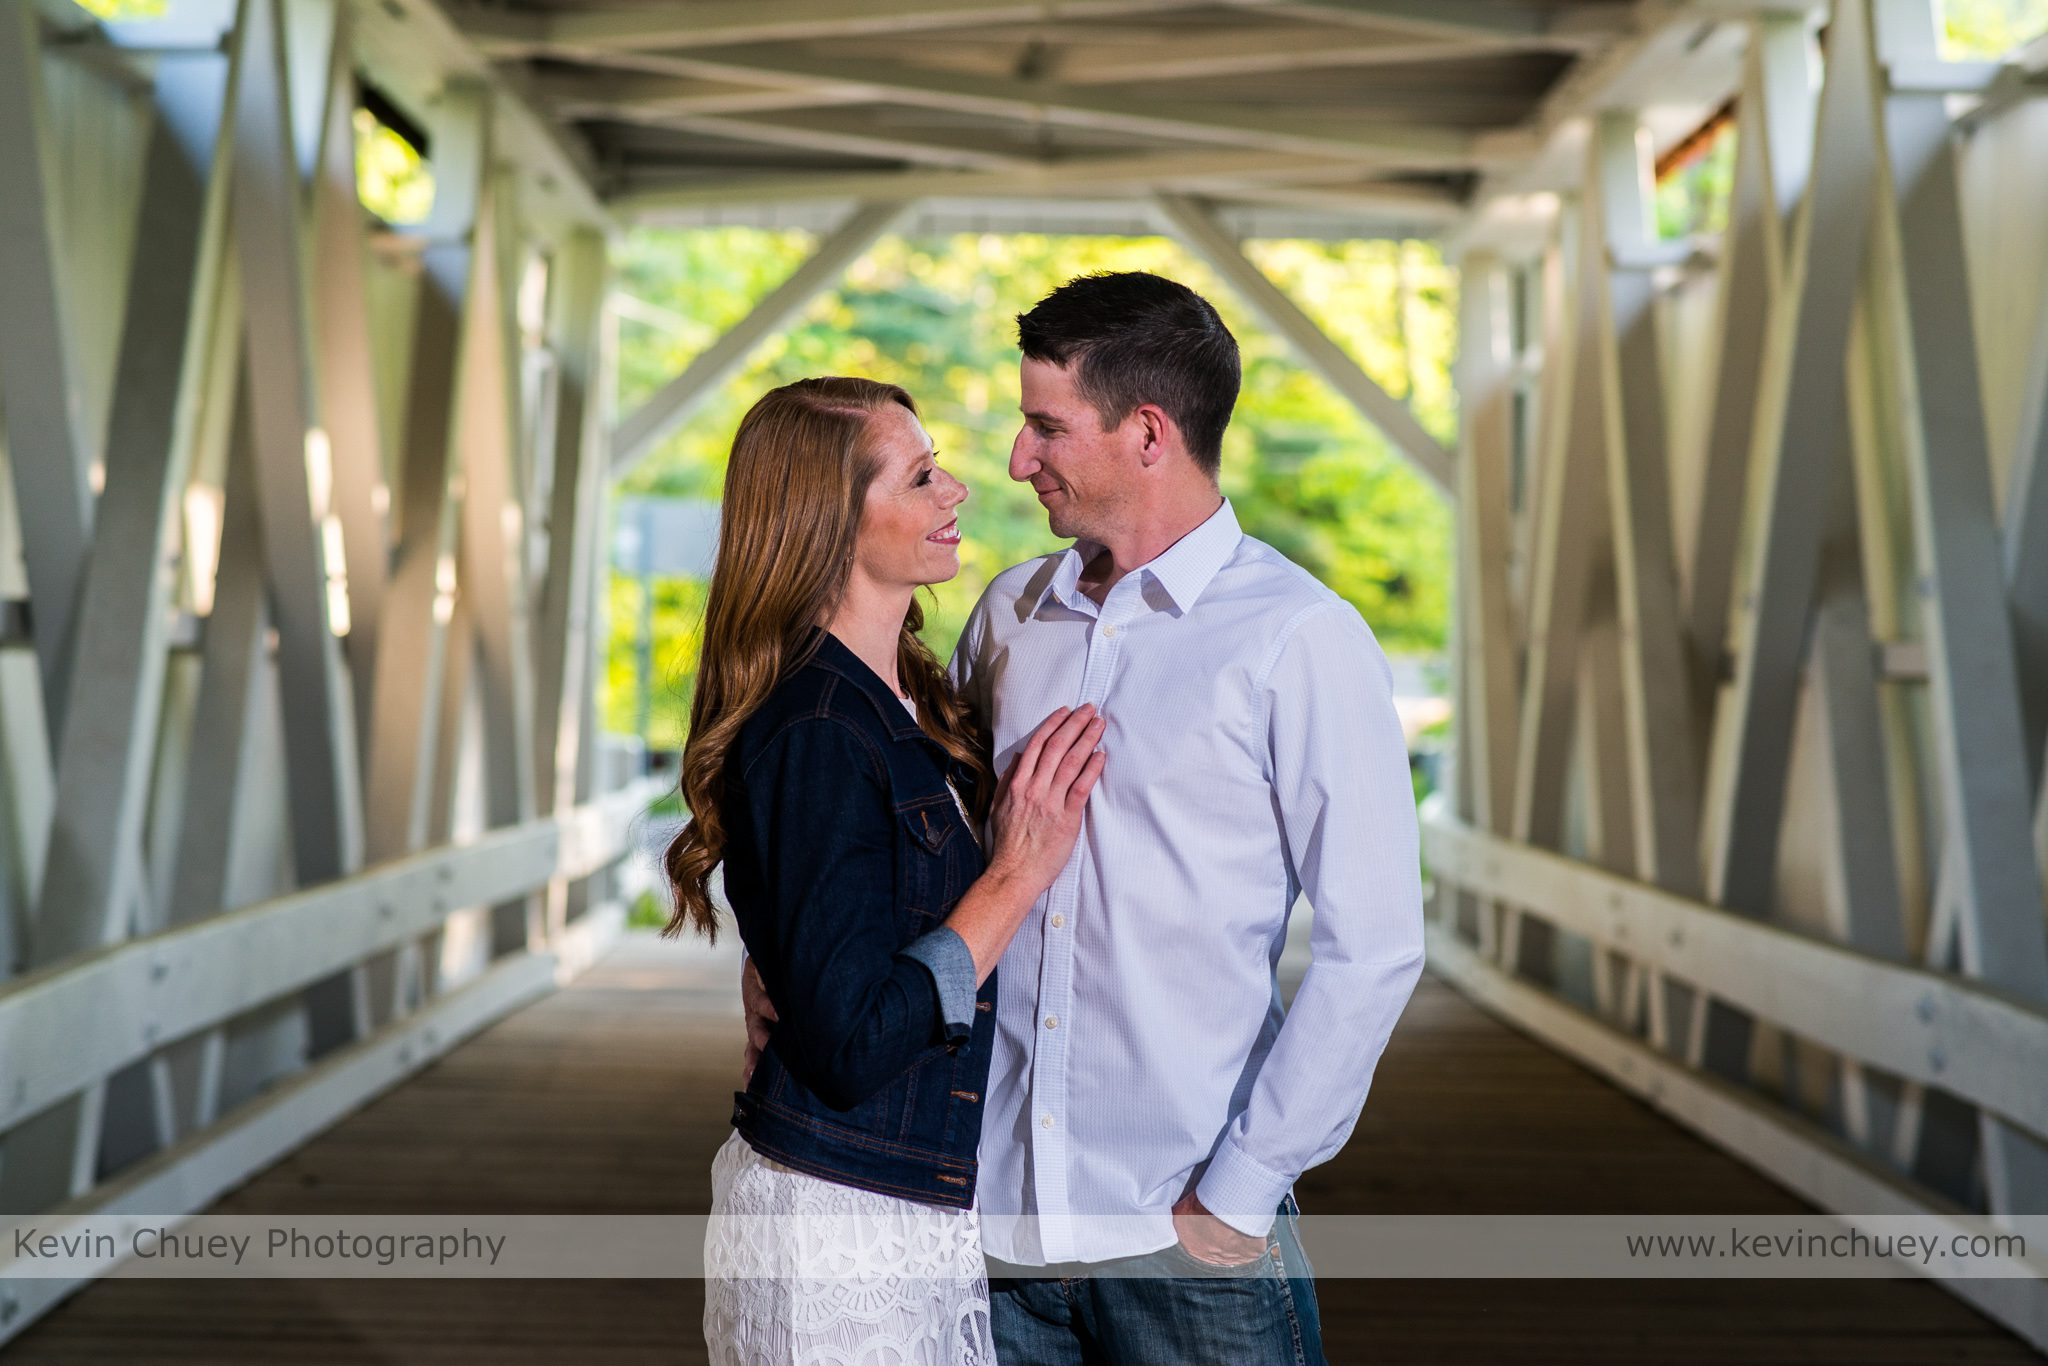 Cuyahoga Valley National Park Engagement Session